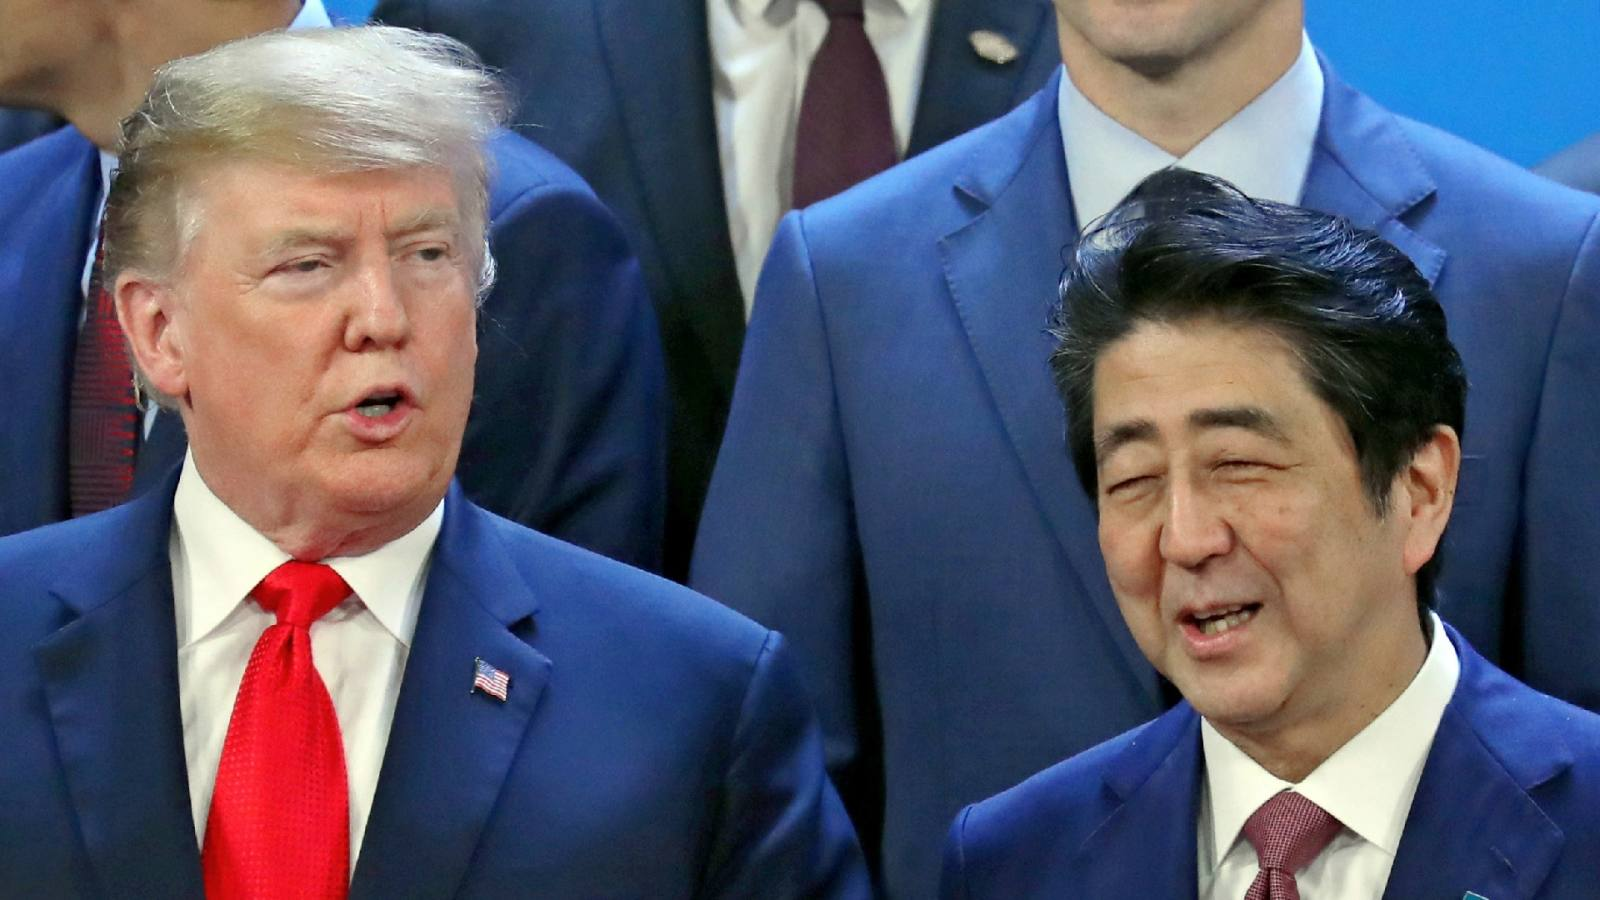 Japanese Prime Minister Shinzo Abe has approached U.S. President Donald Trump about possibly becoming the first foreign leader to meet Japan's incoming emperor after he ascends the throne May 1.